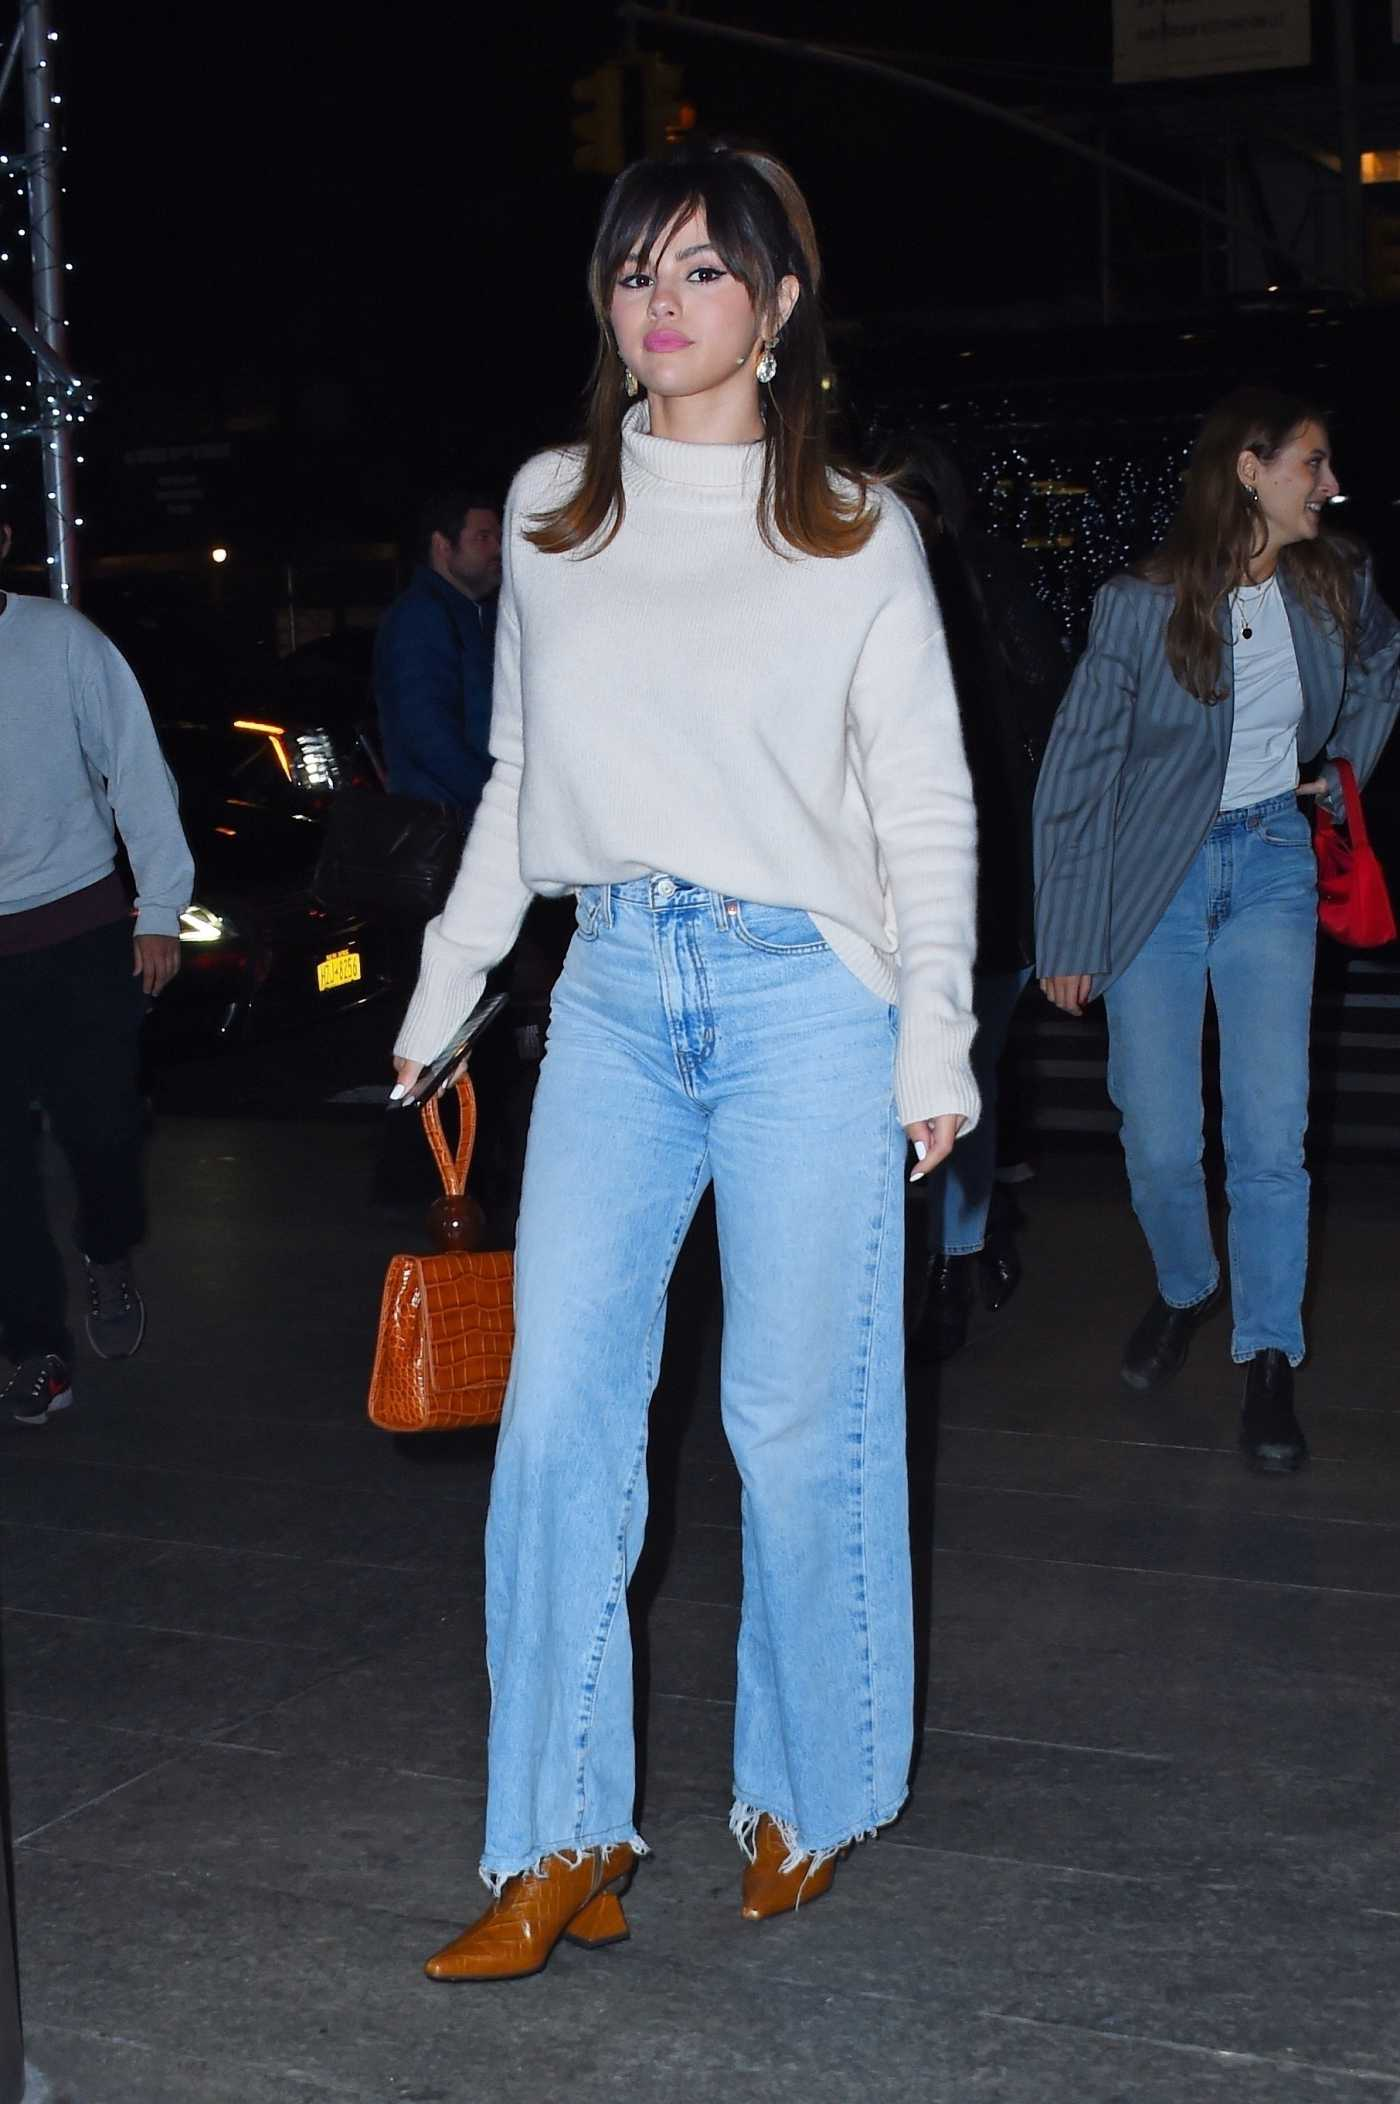 Selena Gomez in a White Sweater Steps Out for Dinner at Nobu Restaurant in New York 01/13/2020